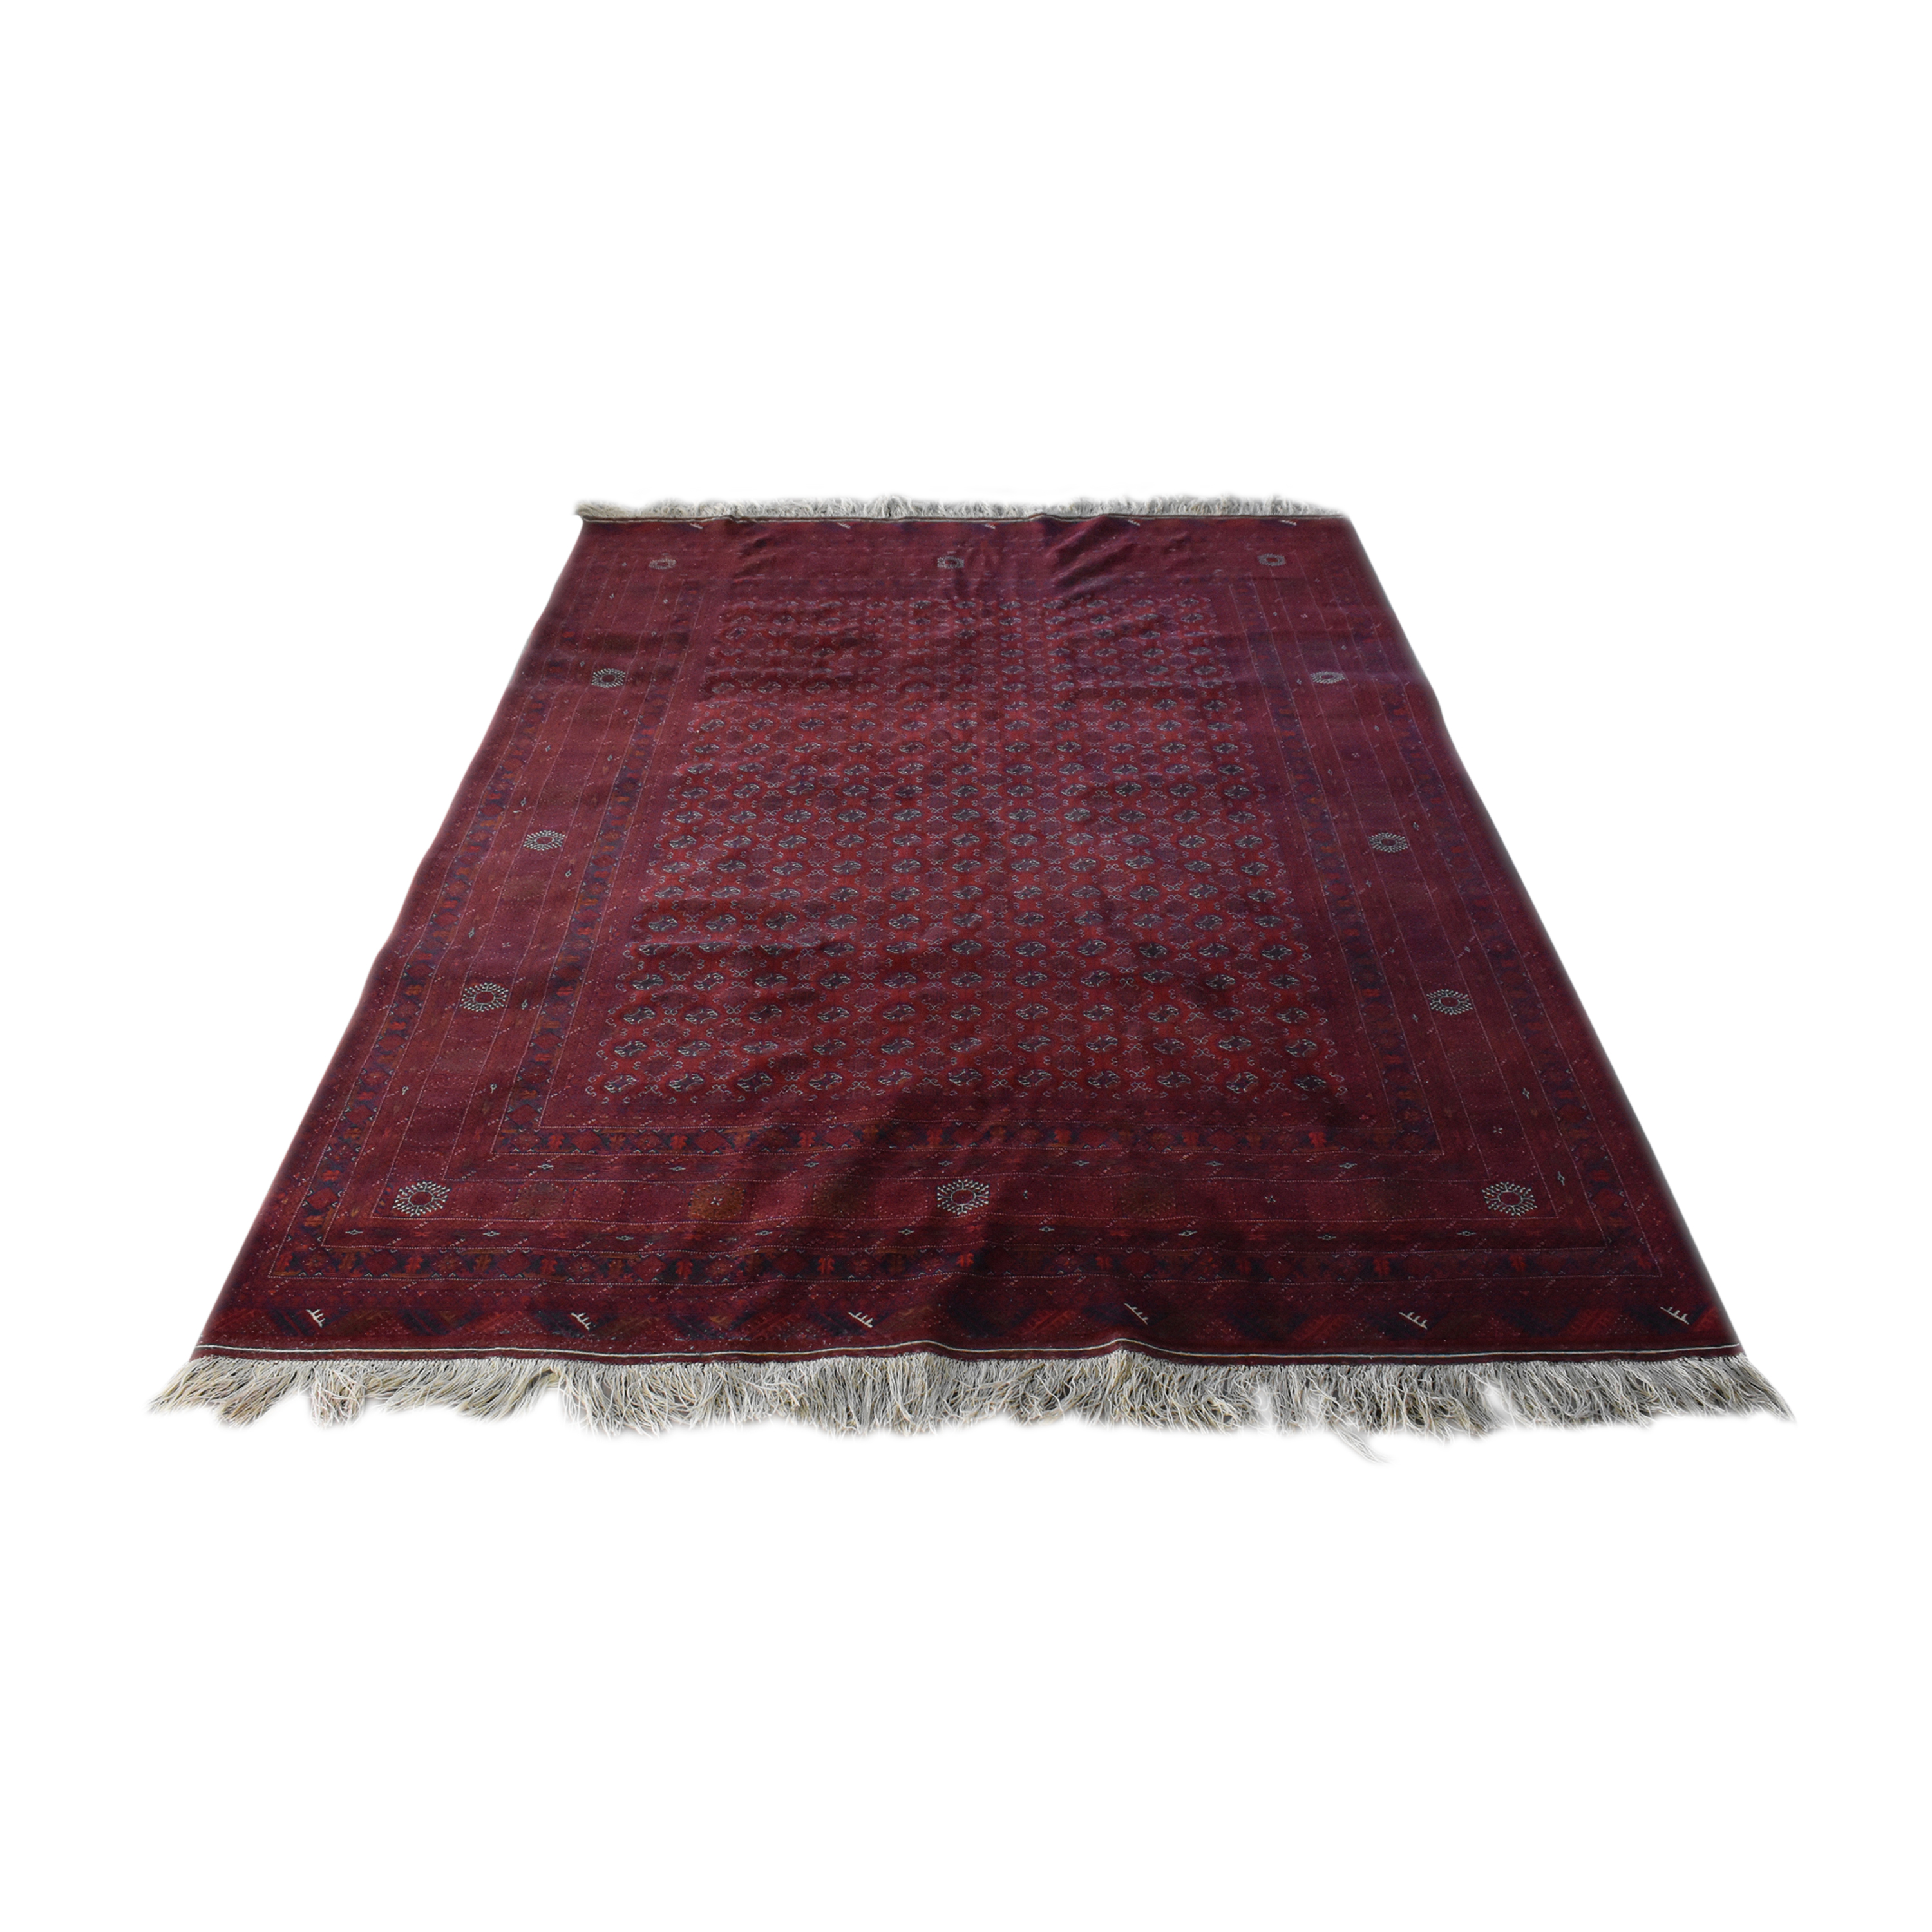 Bokhara-Style Patterned Area Rug for sale